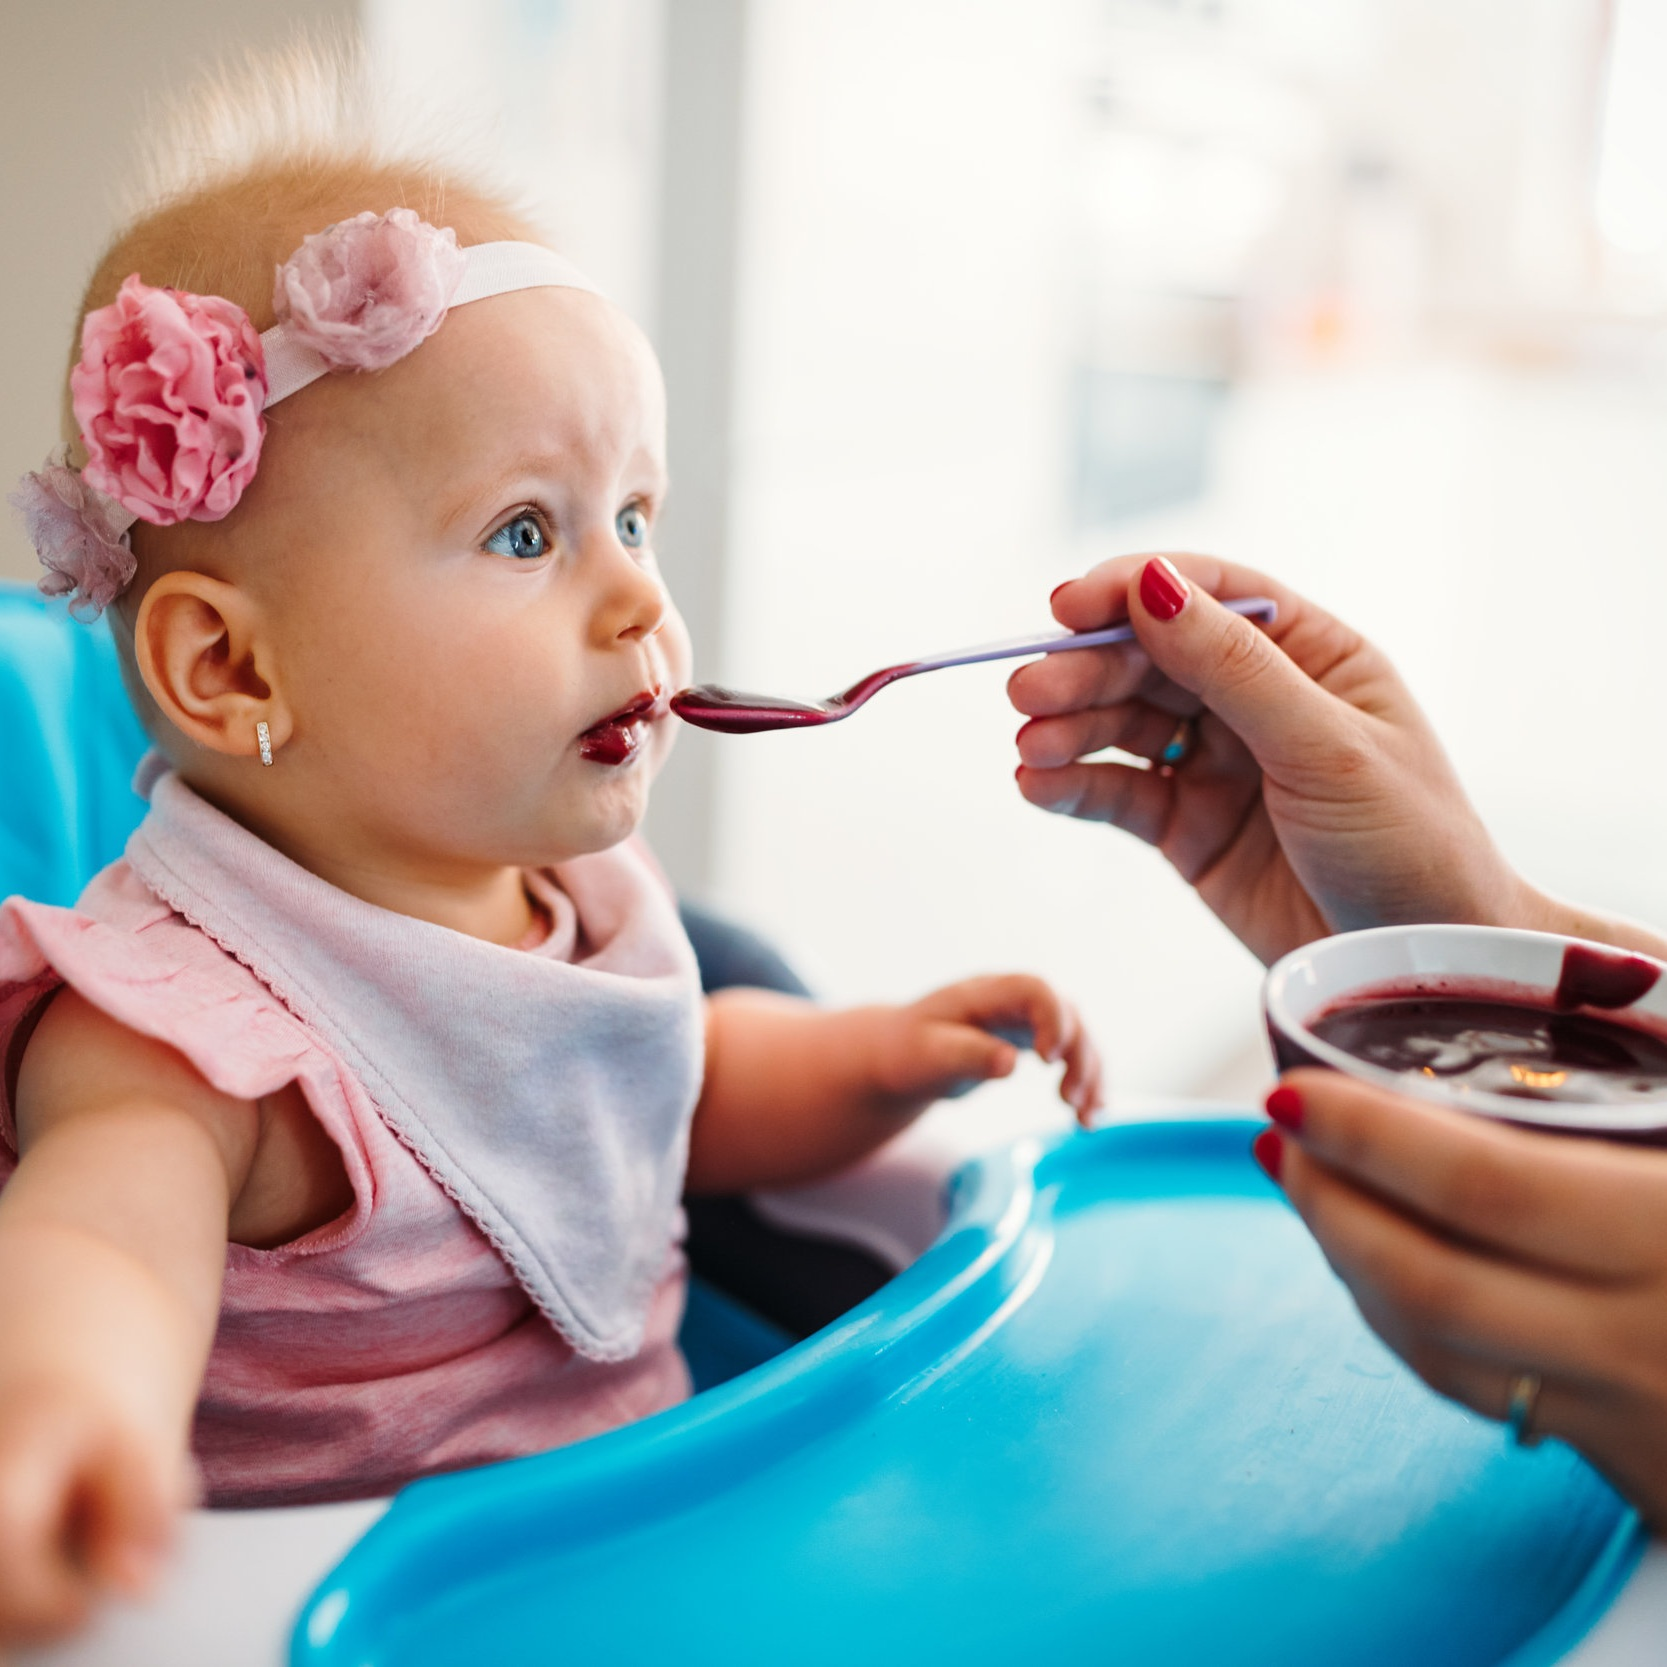 mother-feeding-baby-with-spoon-indoors-ZGAH9Q8.jpg